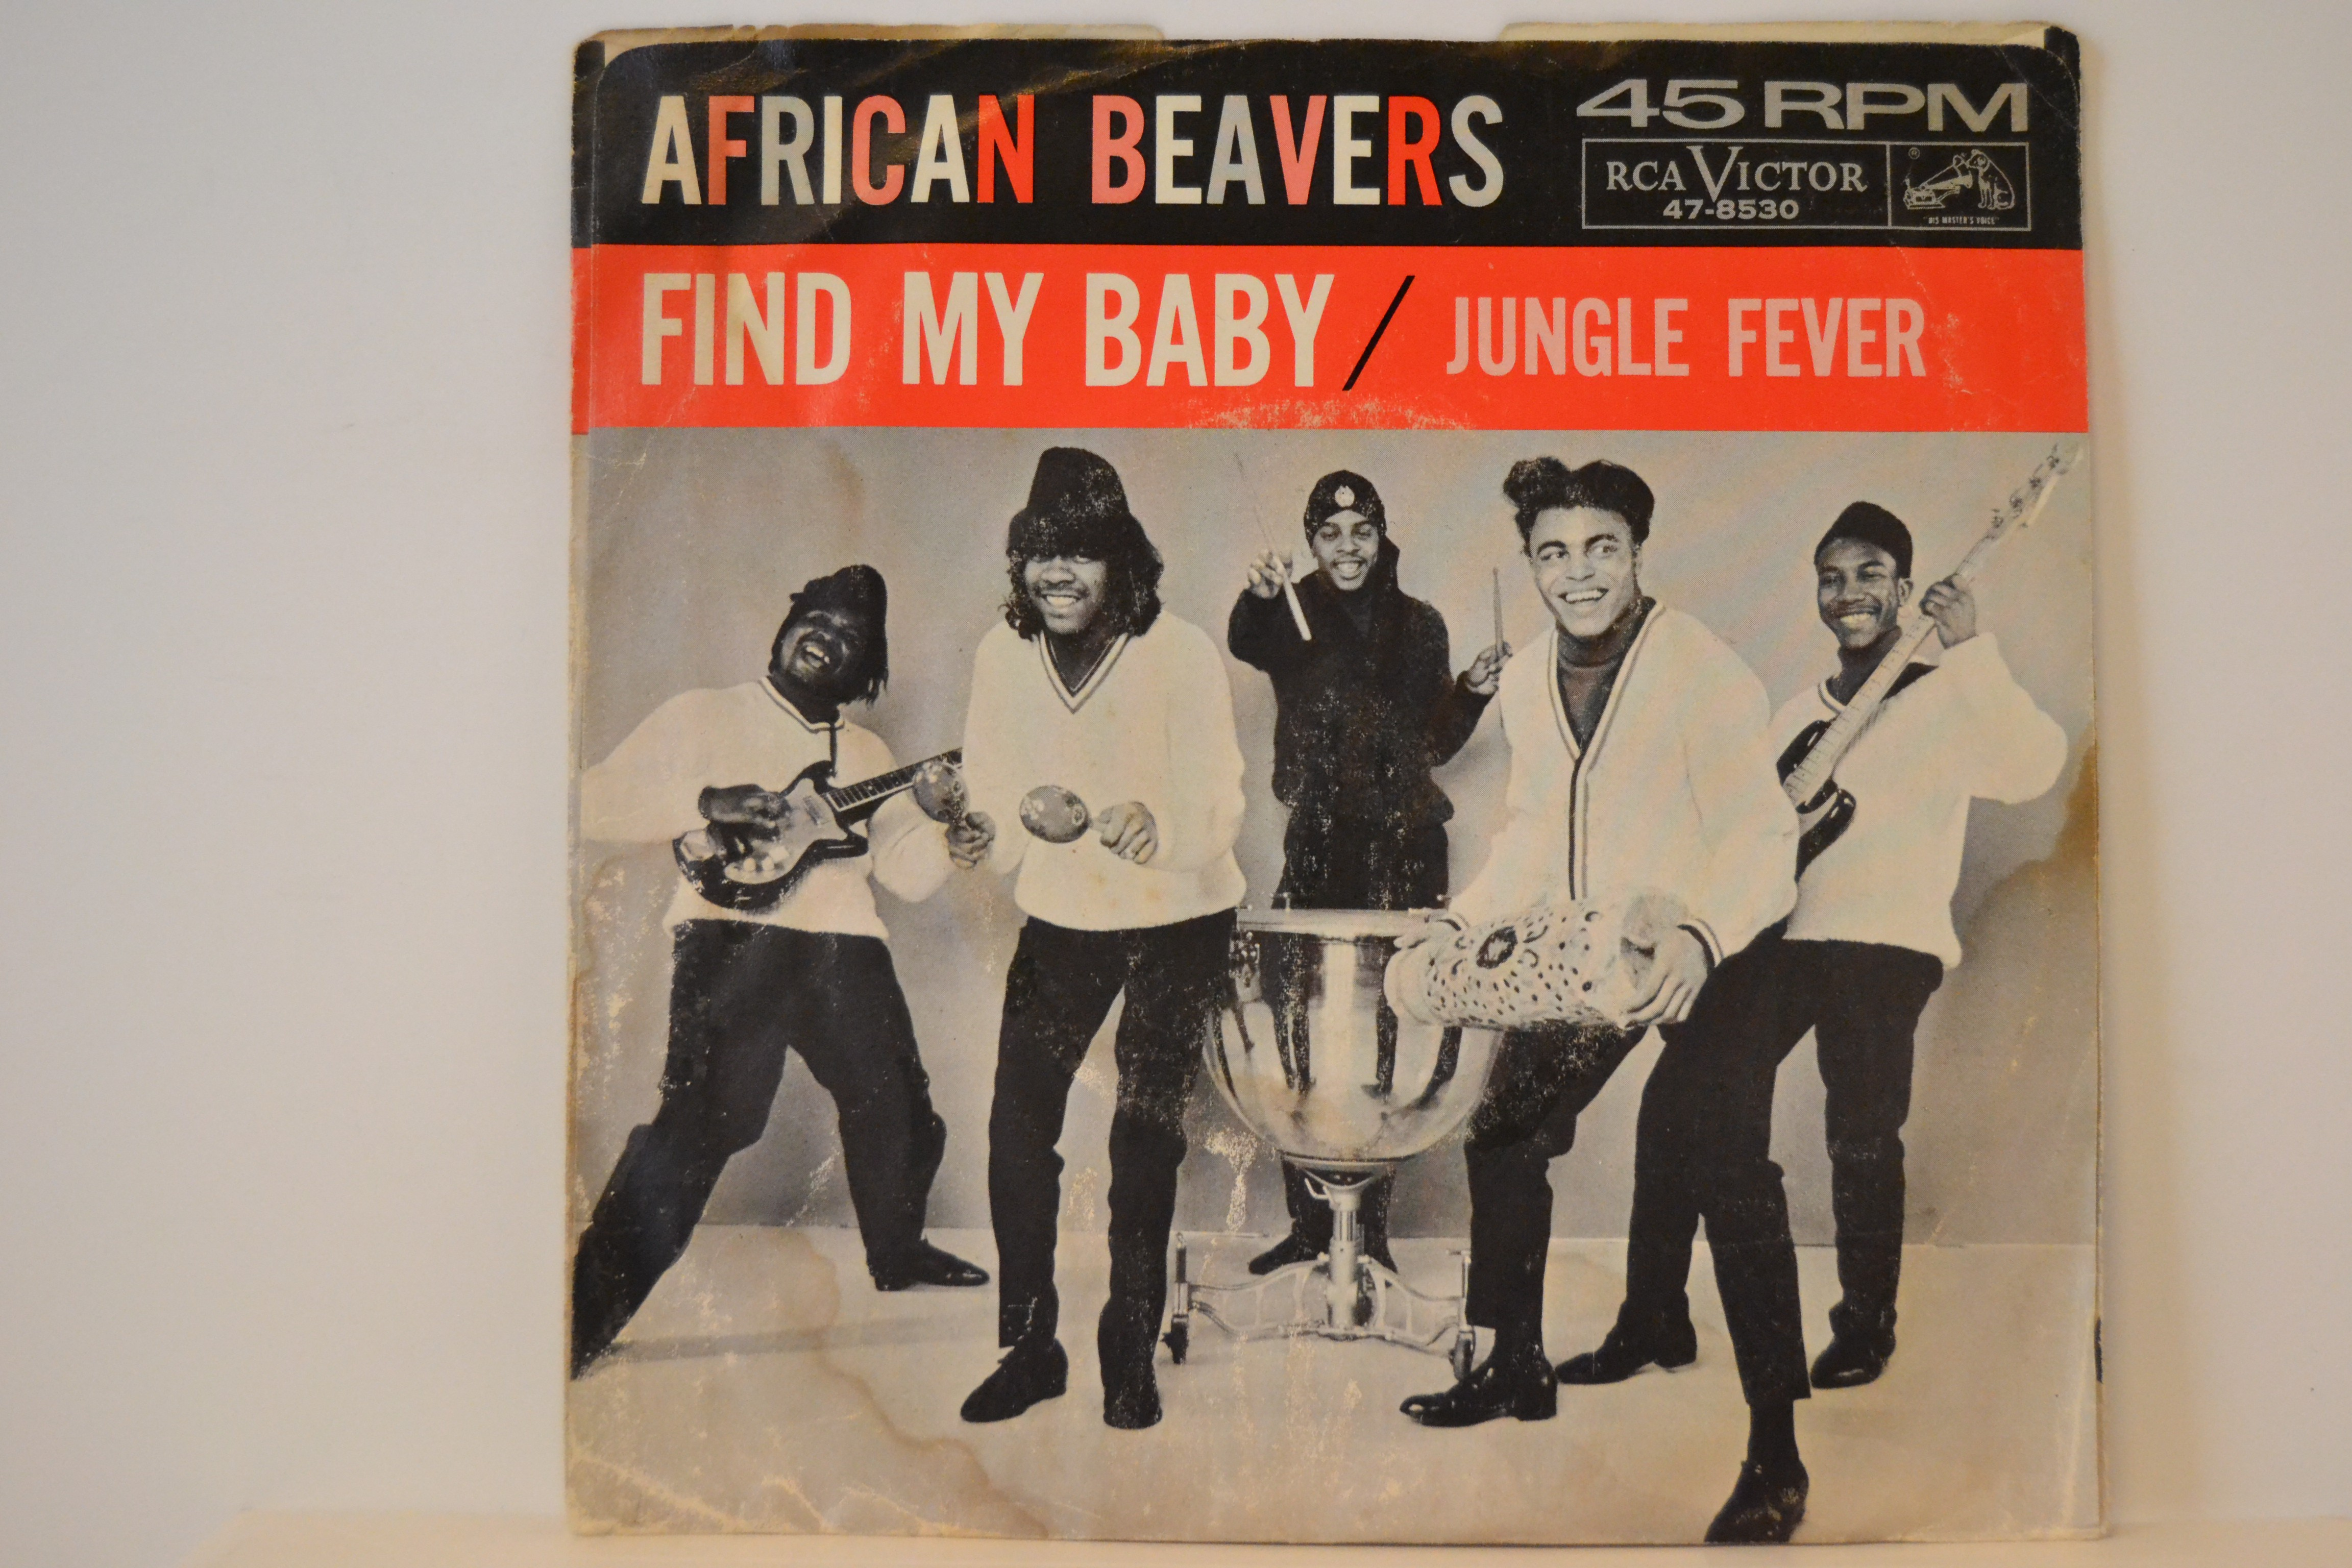 AFRICAN BEAVERS : Find my baby / Jungle fever